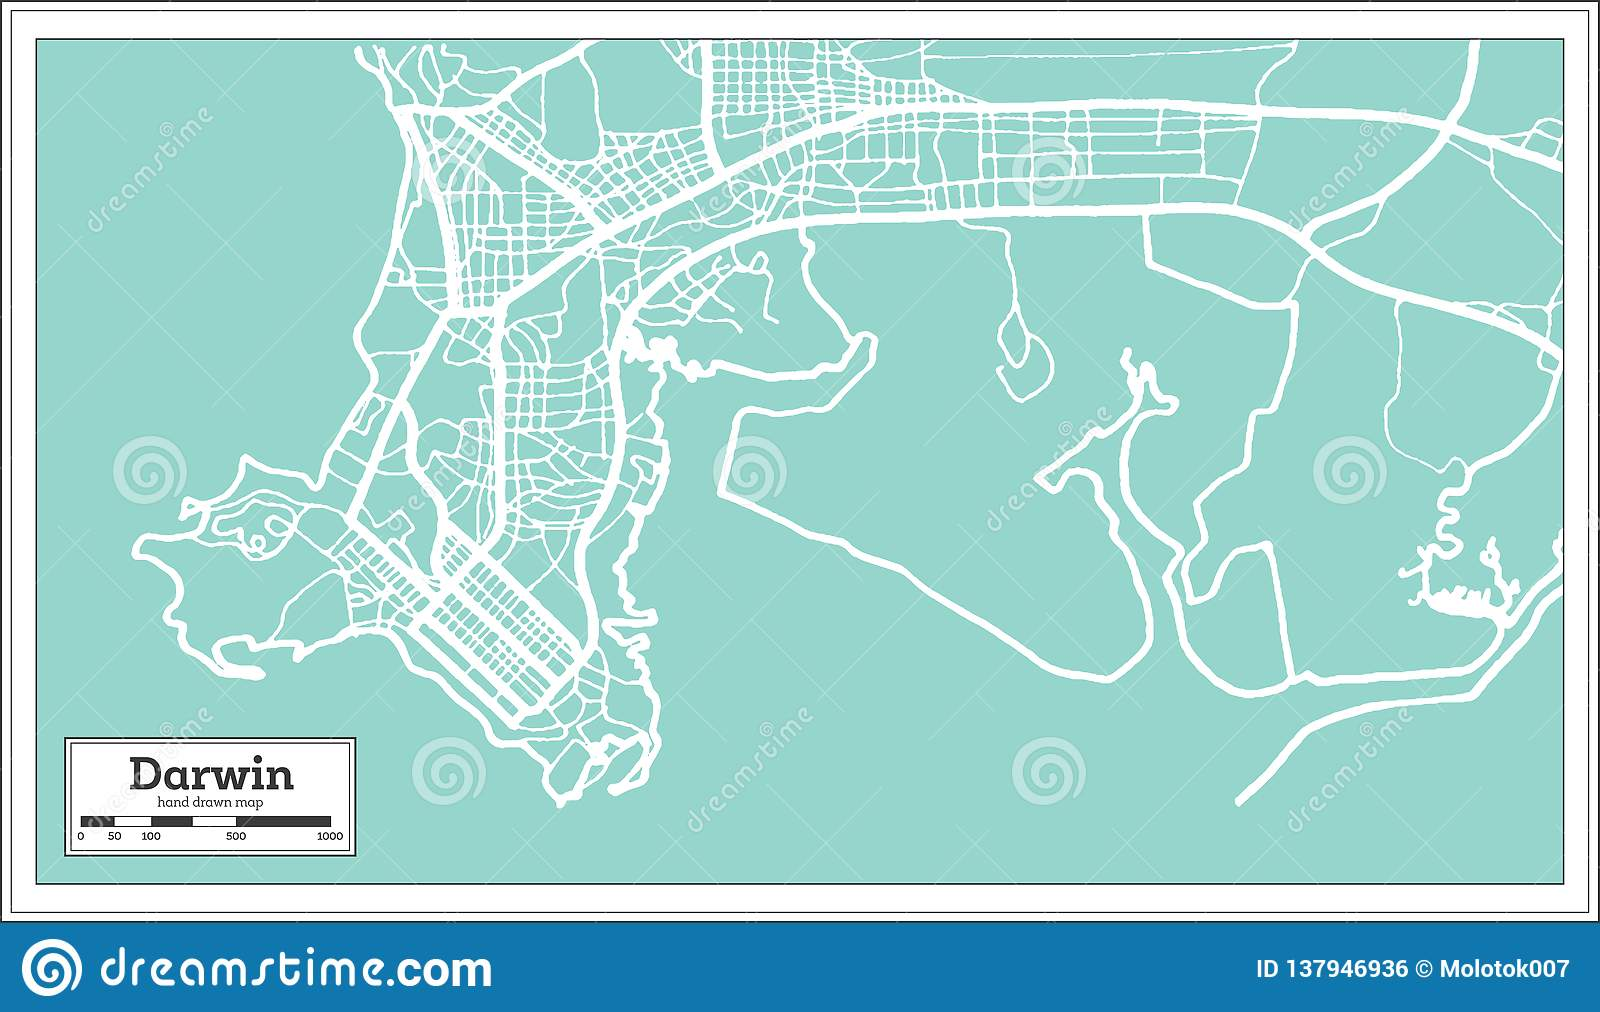 Darwin Australia City Map In Retro Style. Outline Map Stock Vector on